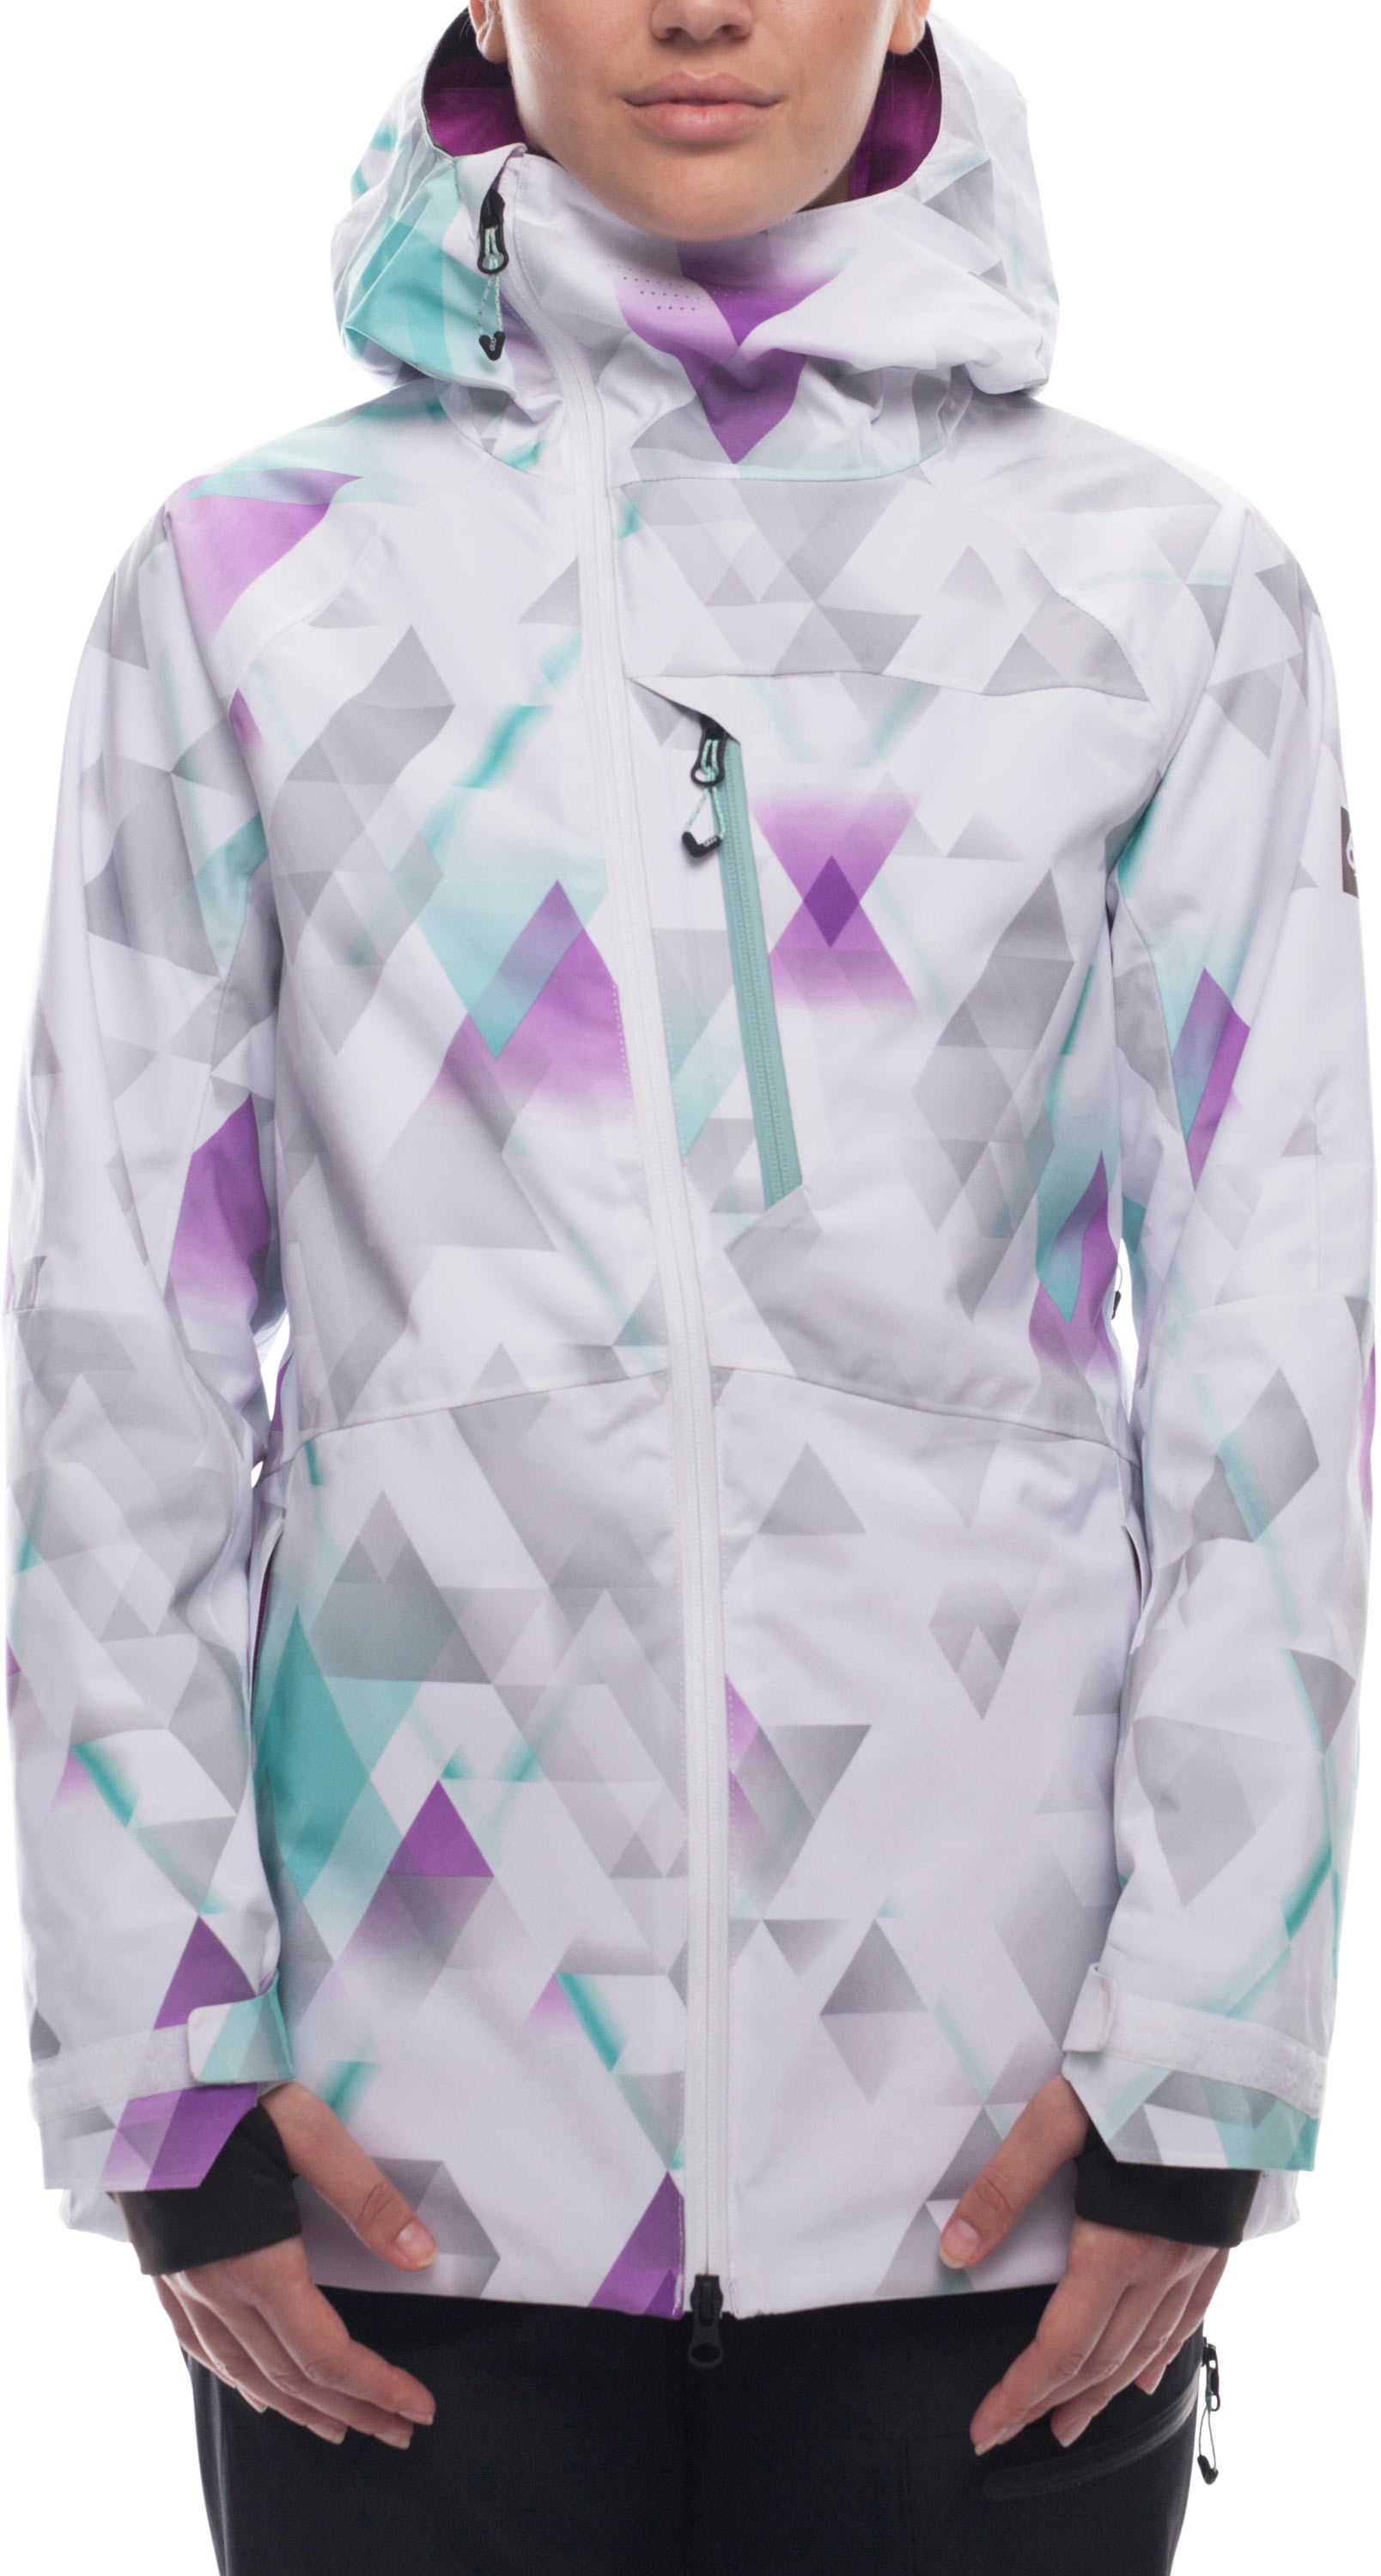 686 Womens Hydra Insulated Snowboard Jacket